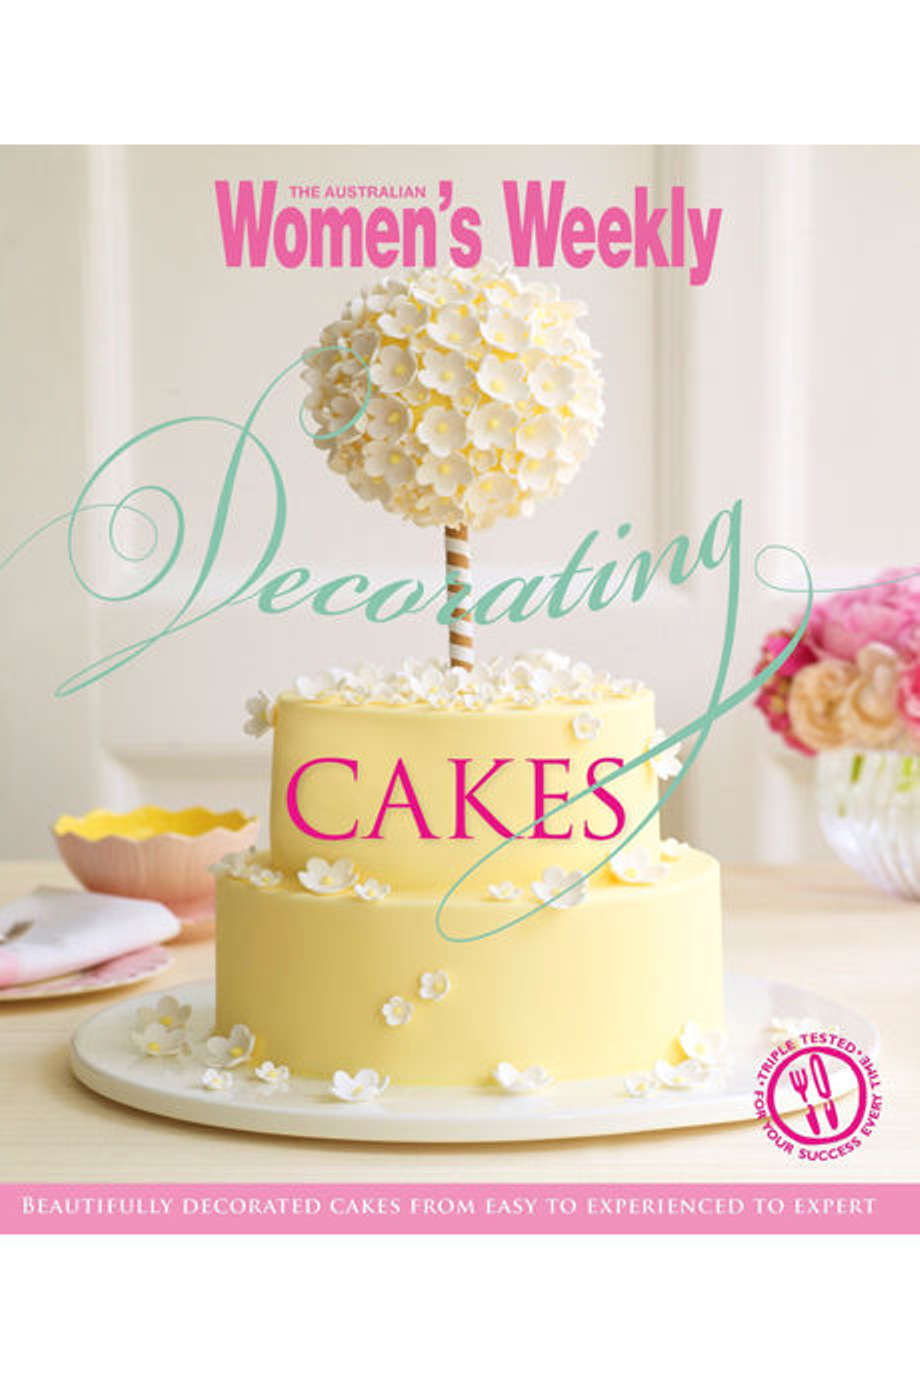 ... Cakes by The Australian Womens Weekly (paperback) Myer Online